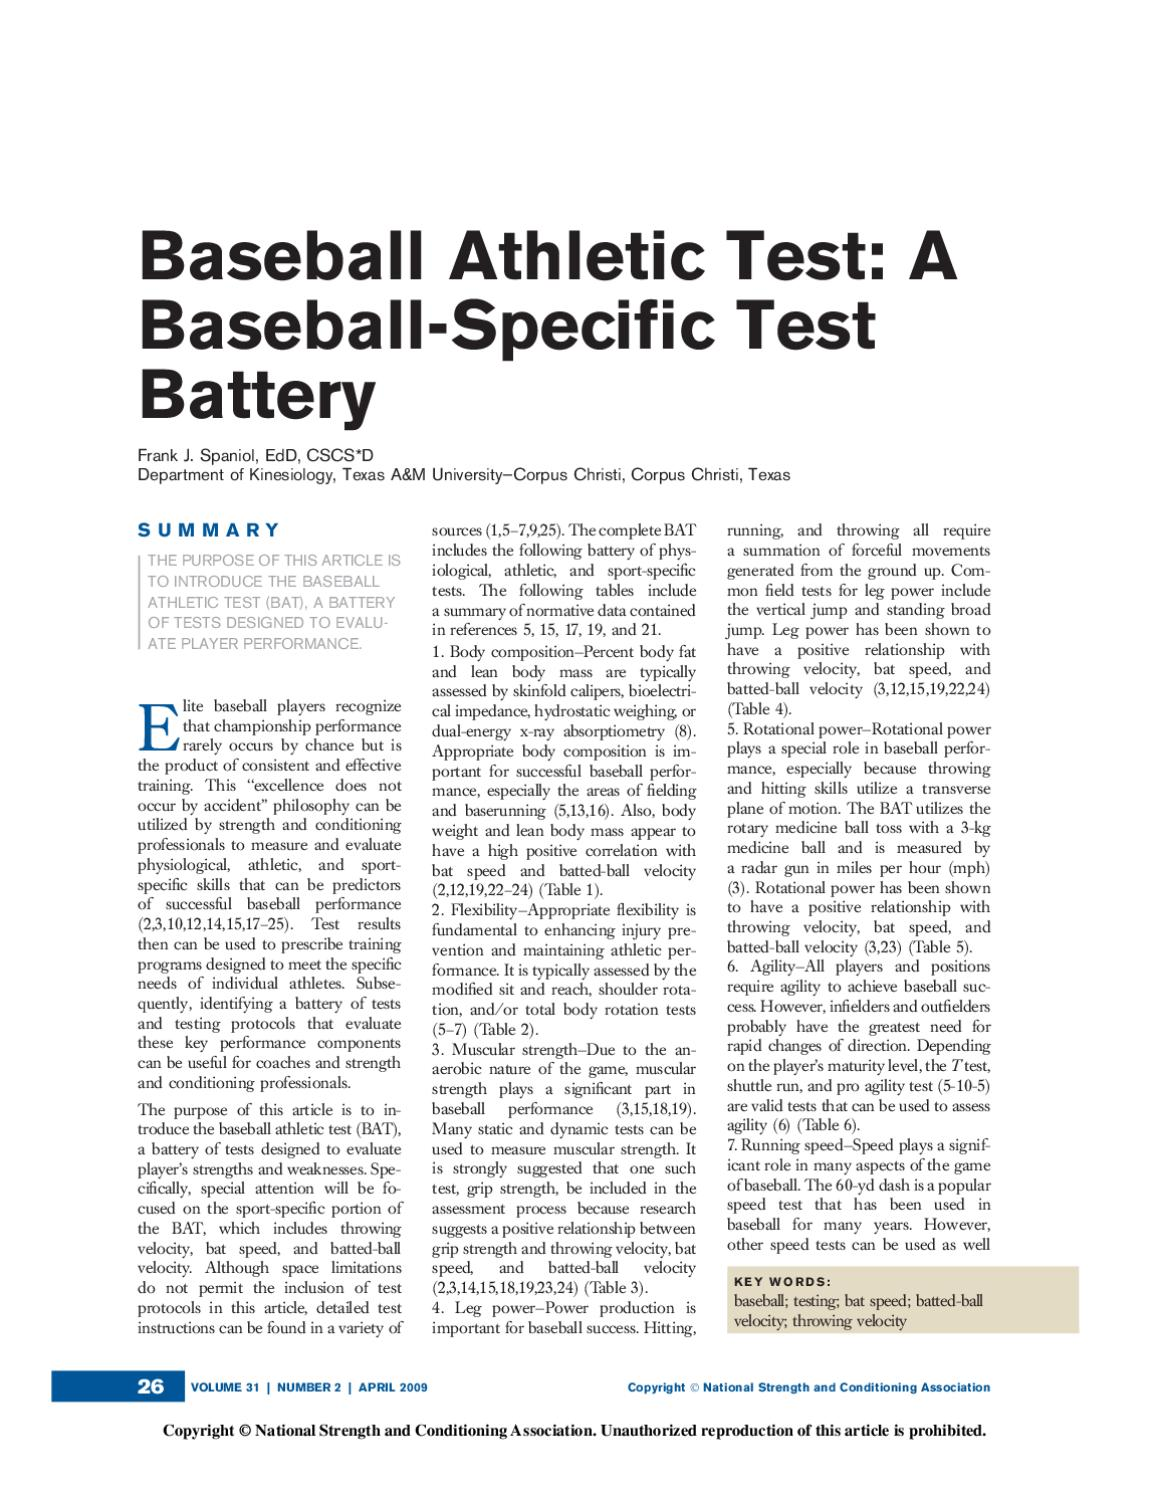 Baseball_Athletic_Test__A_Baseball_Specific_Test.3 by MLB